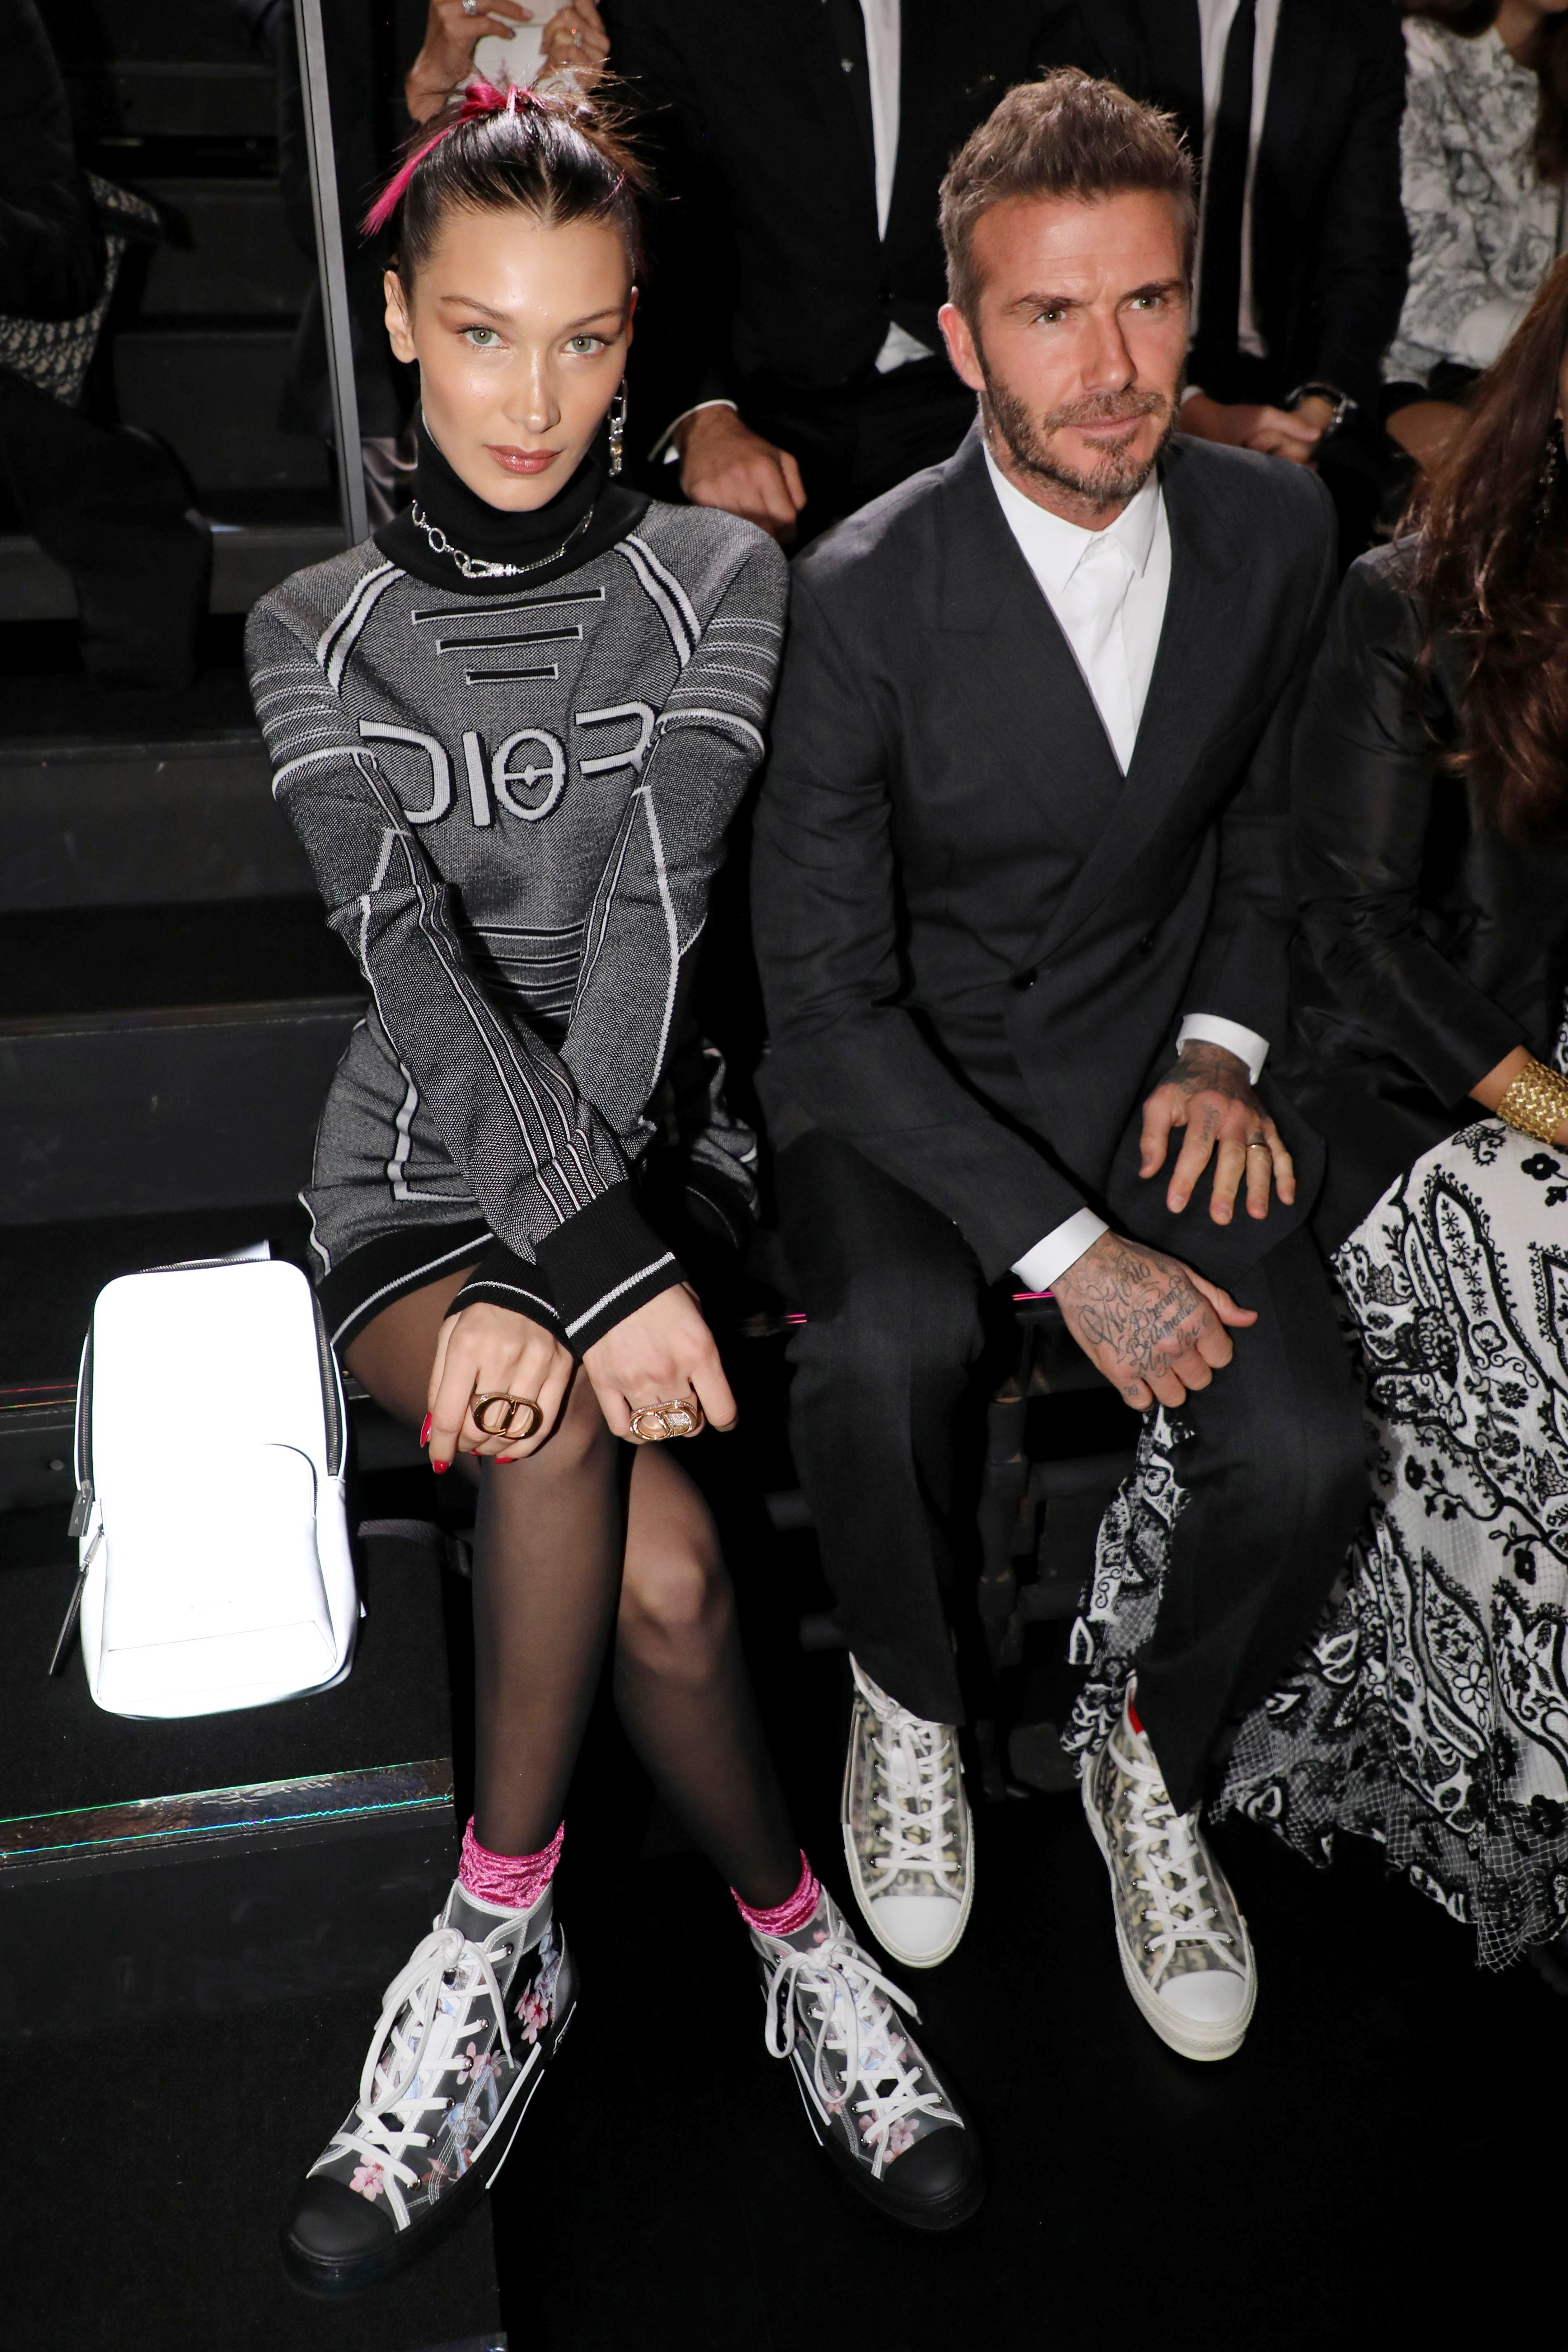 Bella Hadid and David Beckham sit in the front row for the Dior Homme show in Tokyo, Japan, on Nov. 30, 2018.